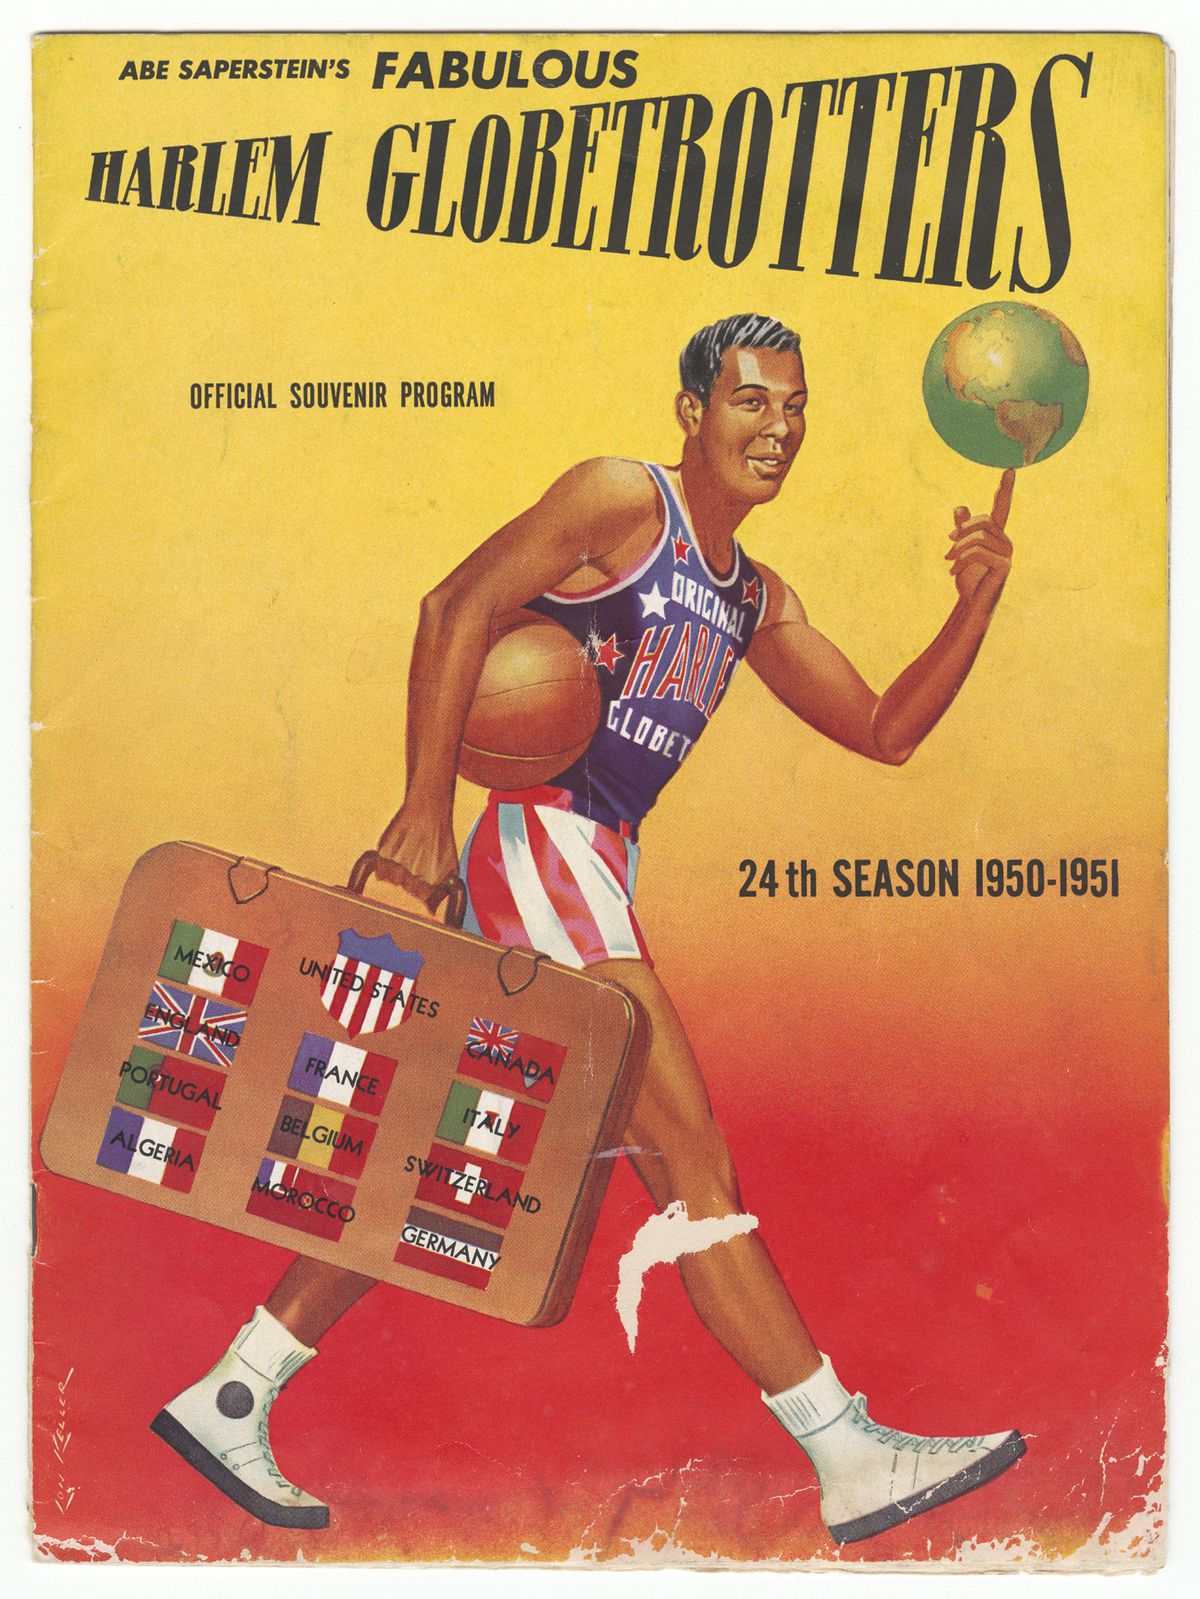 Harlem Globetrotters Program, 24th season. The team was owned by Chicago's Abe Saperstein.   Collection of the Smithsonian National Museum of African American History and Culture; gift of Vicki Gold Levi